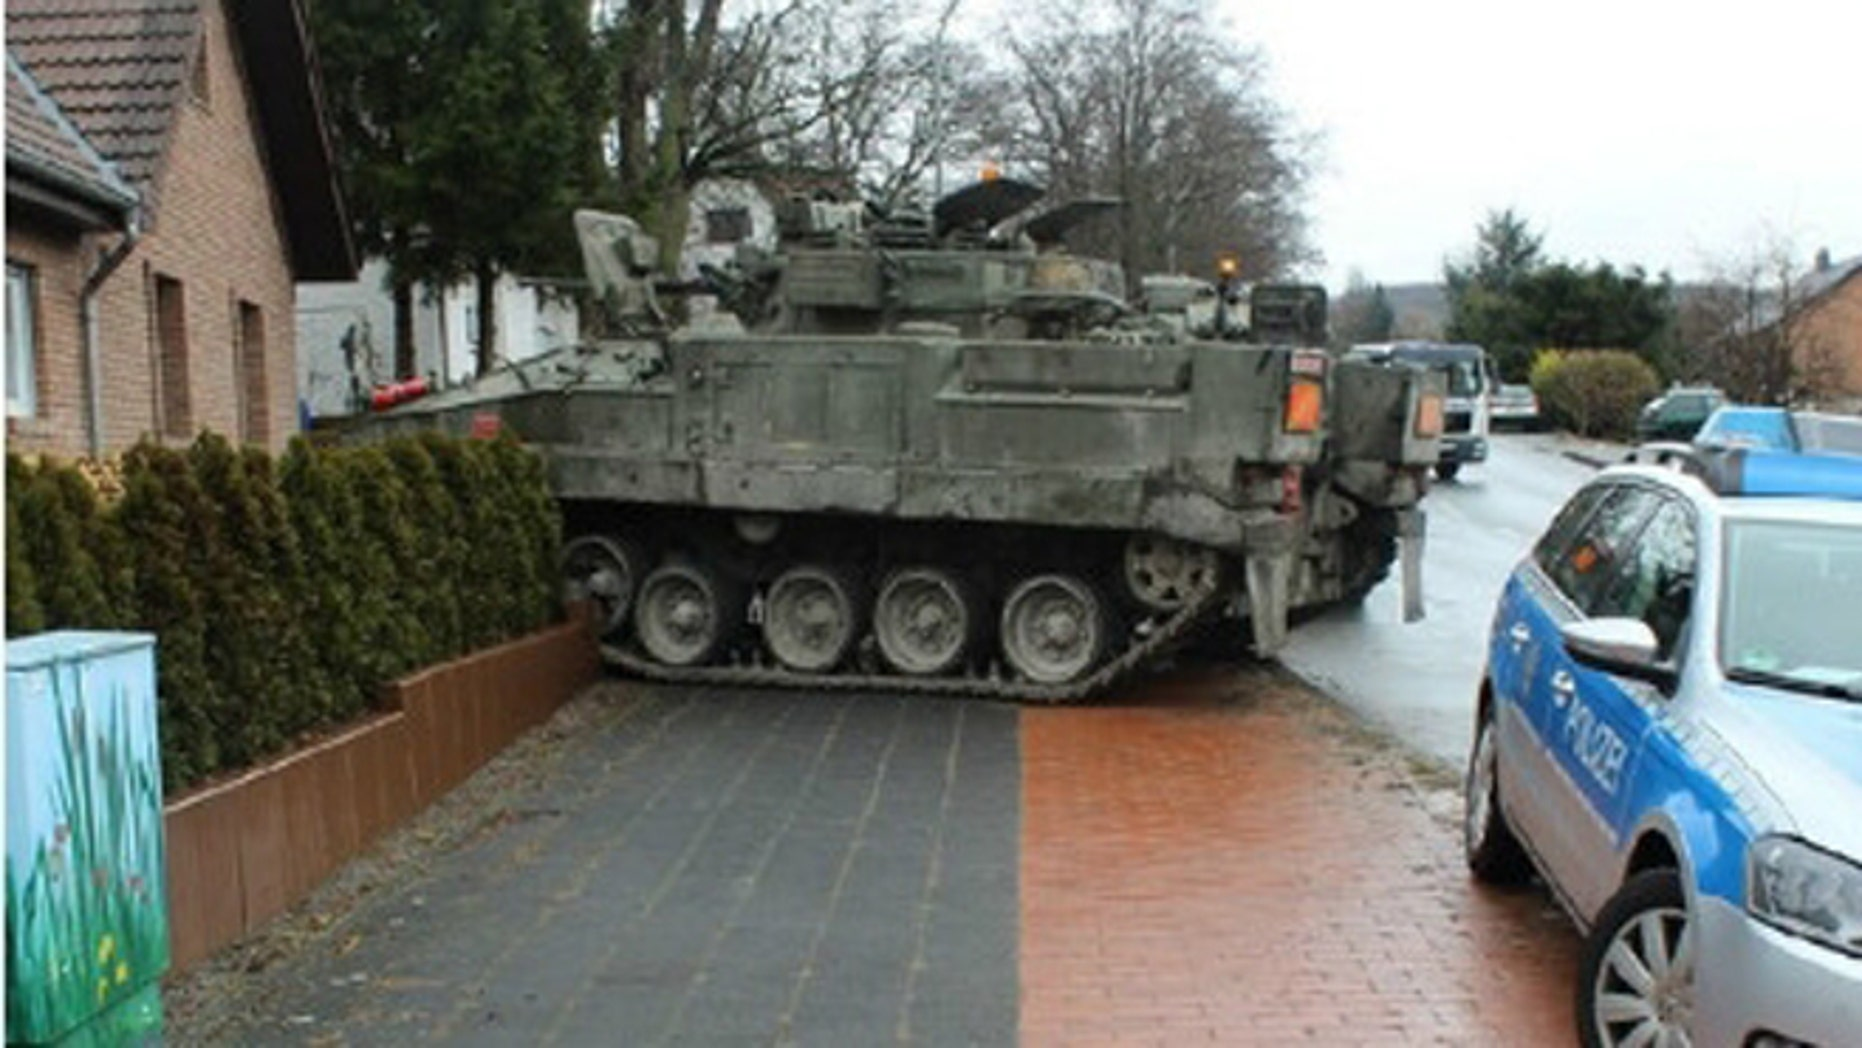 Feb. 10, 2015: Authorities say the tank crashed after suffering a technical problem.